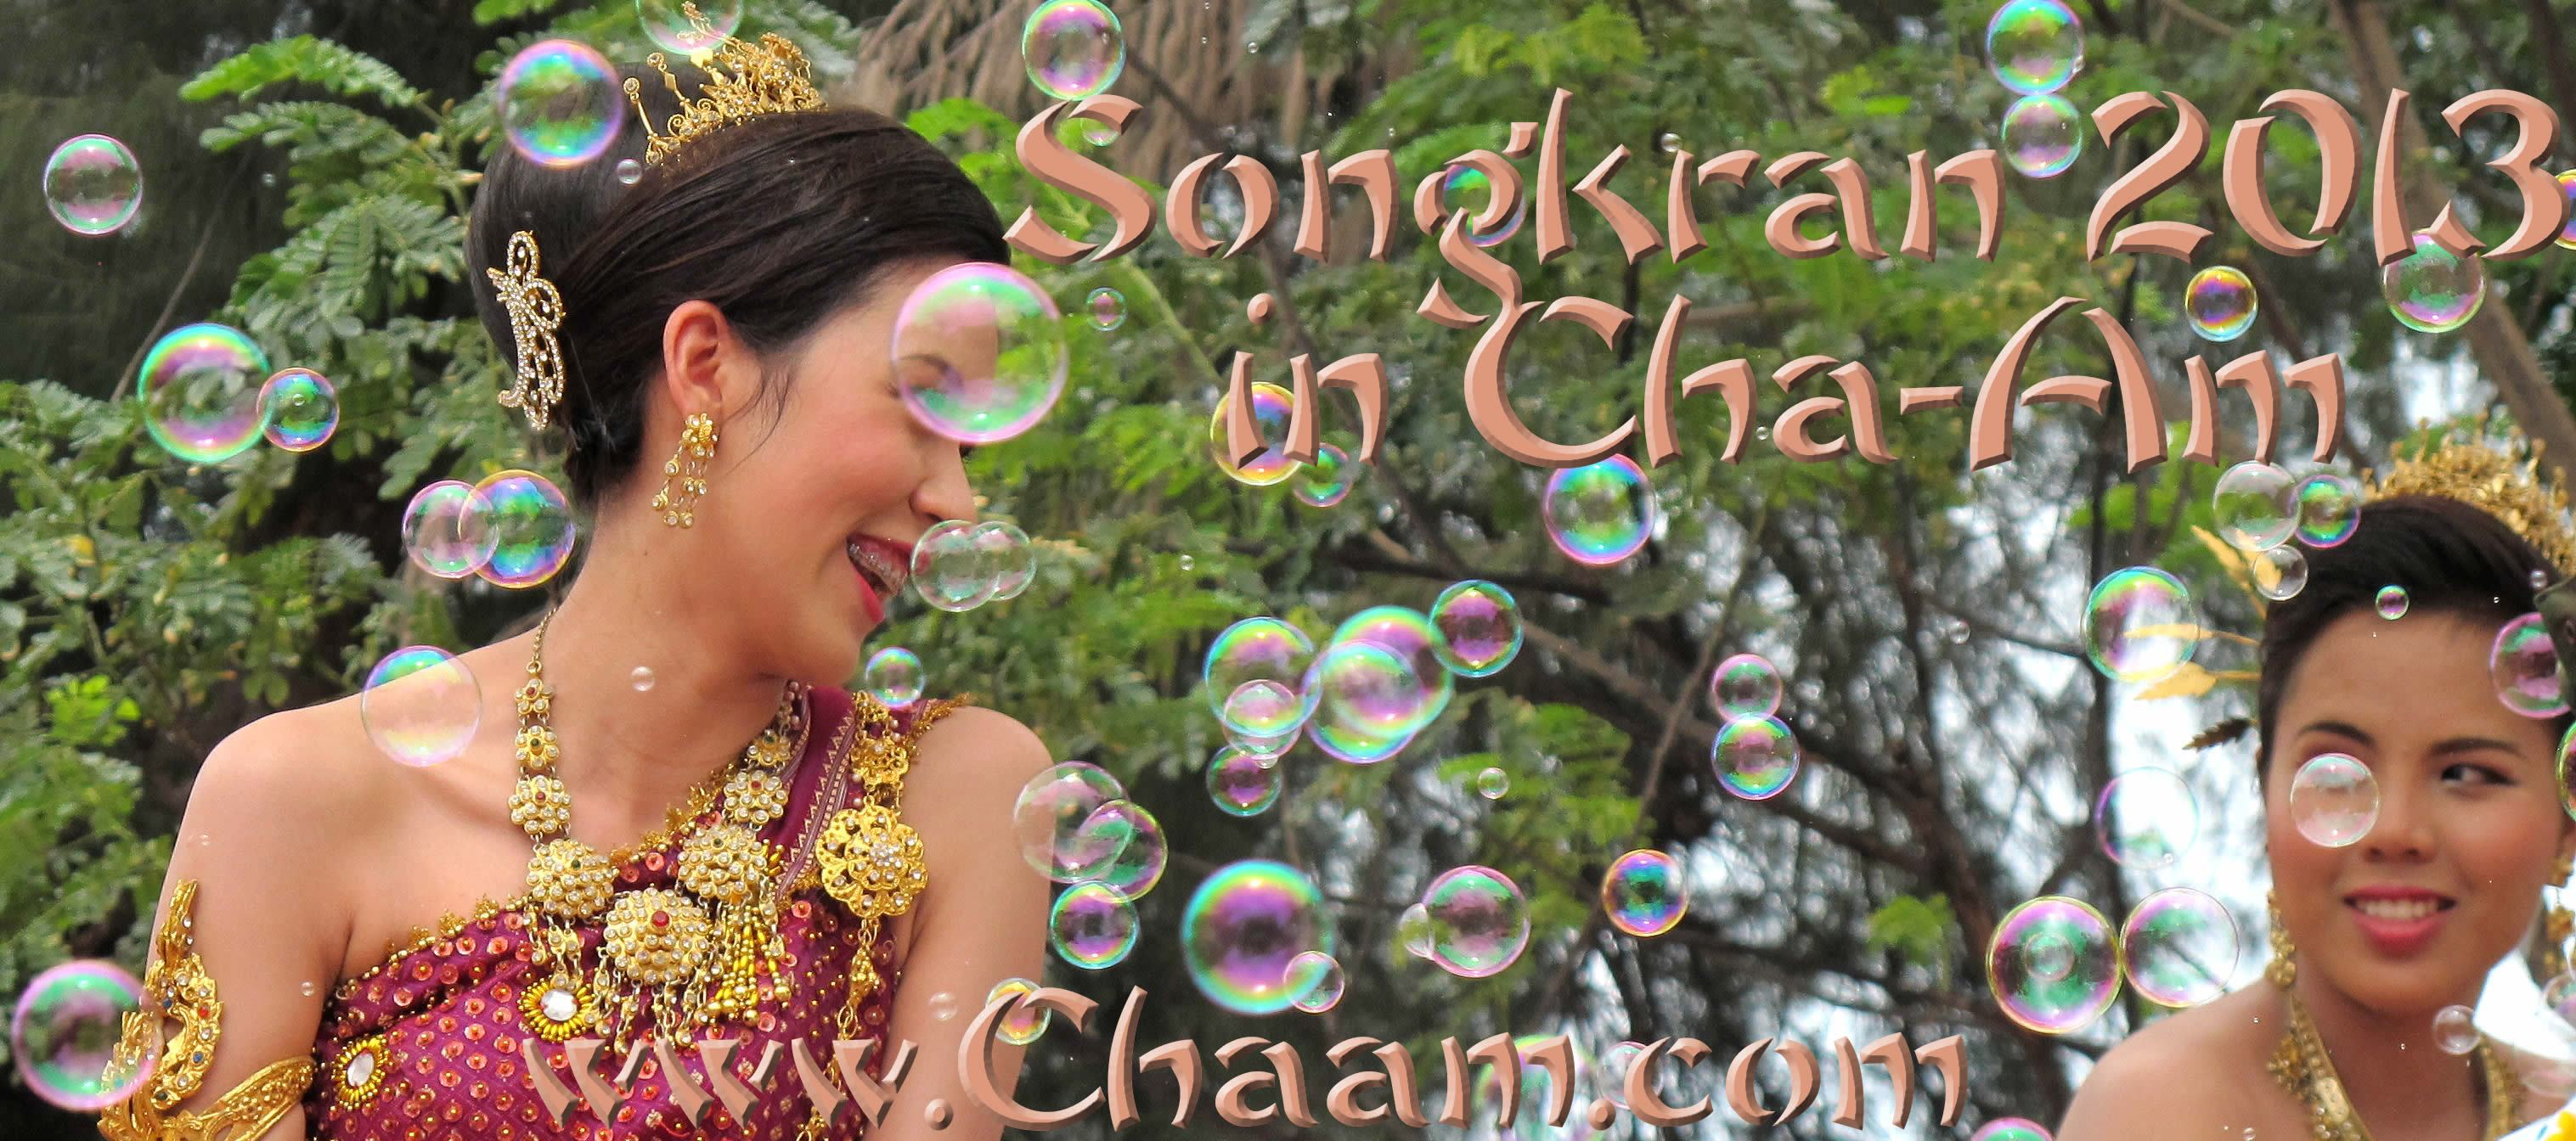 Cha-Am Songkran